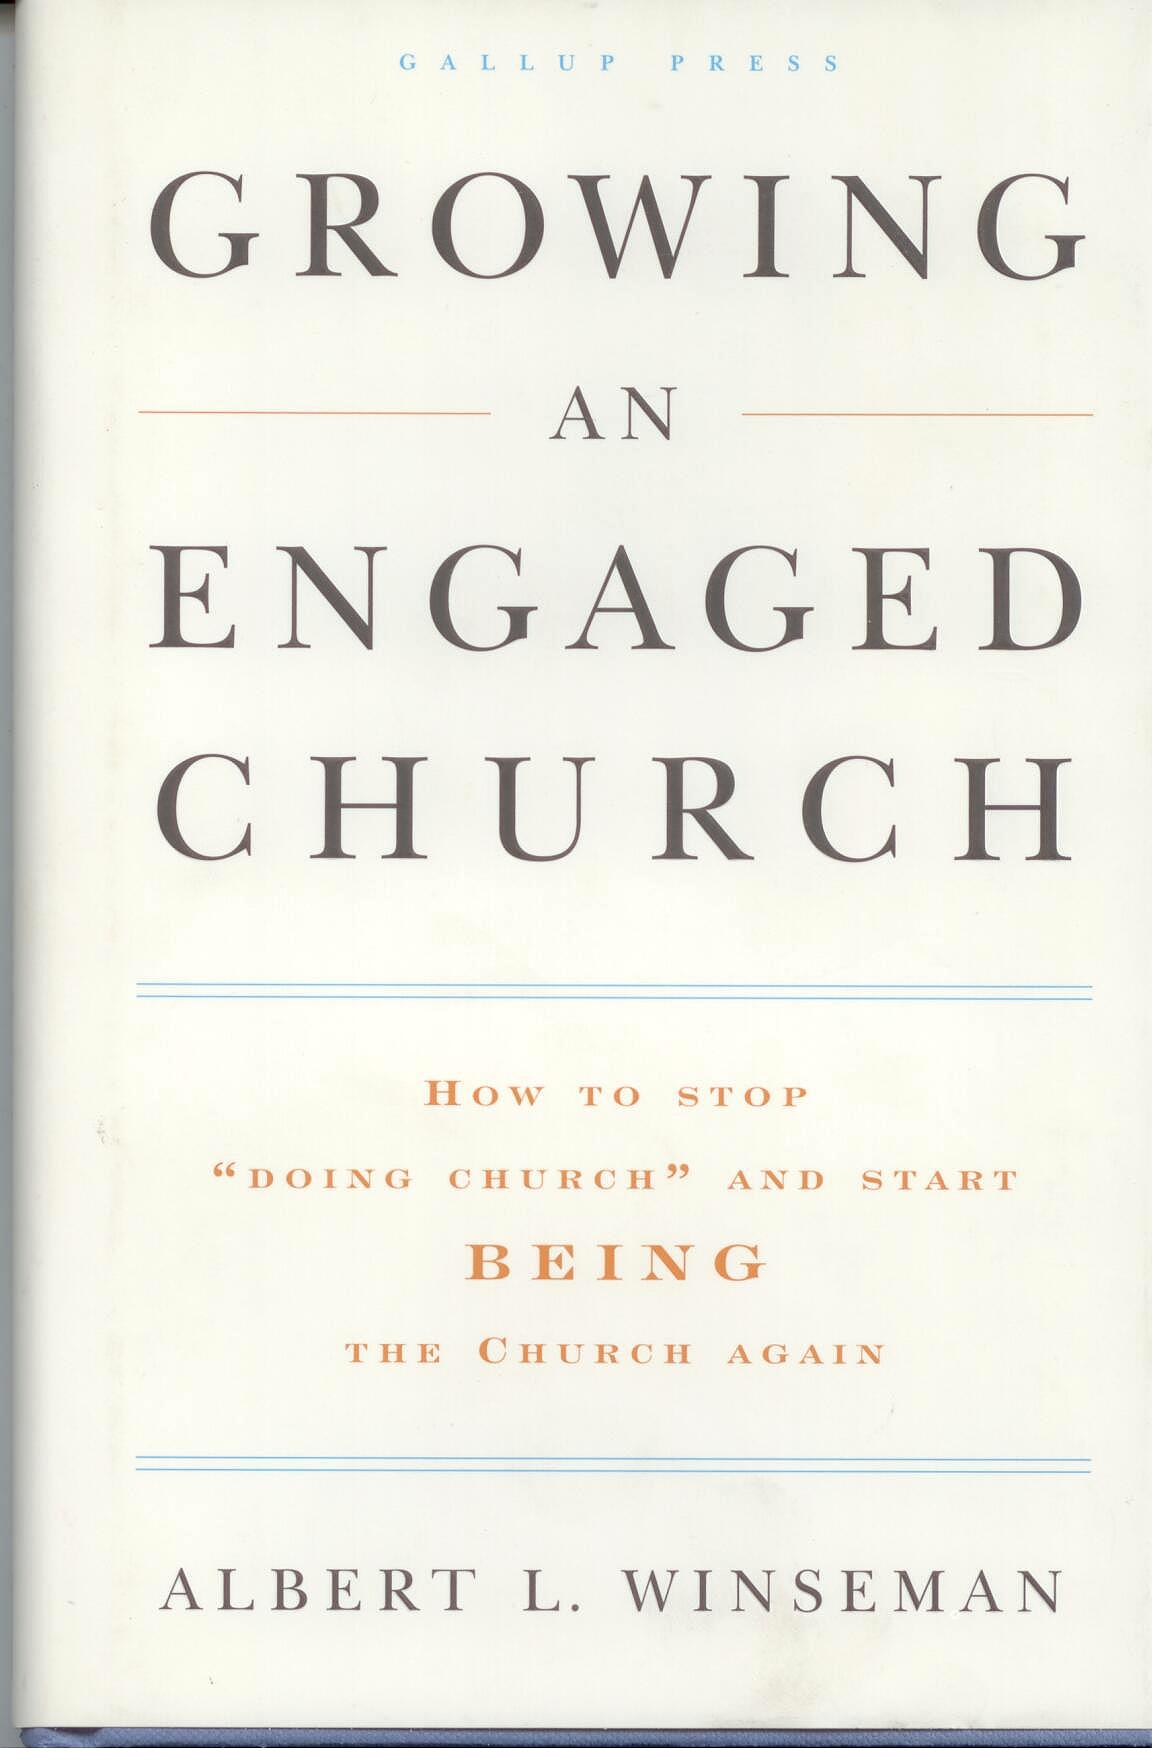 Growing An Engaged Church by Albert L. Winseman 108-9781595620149